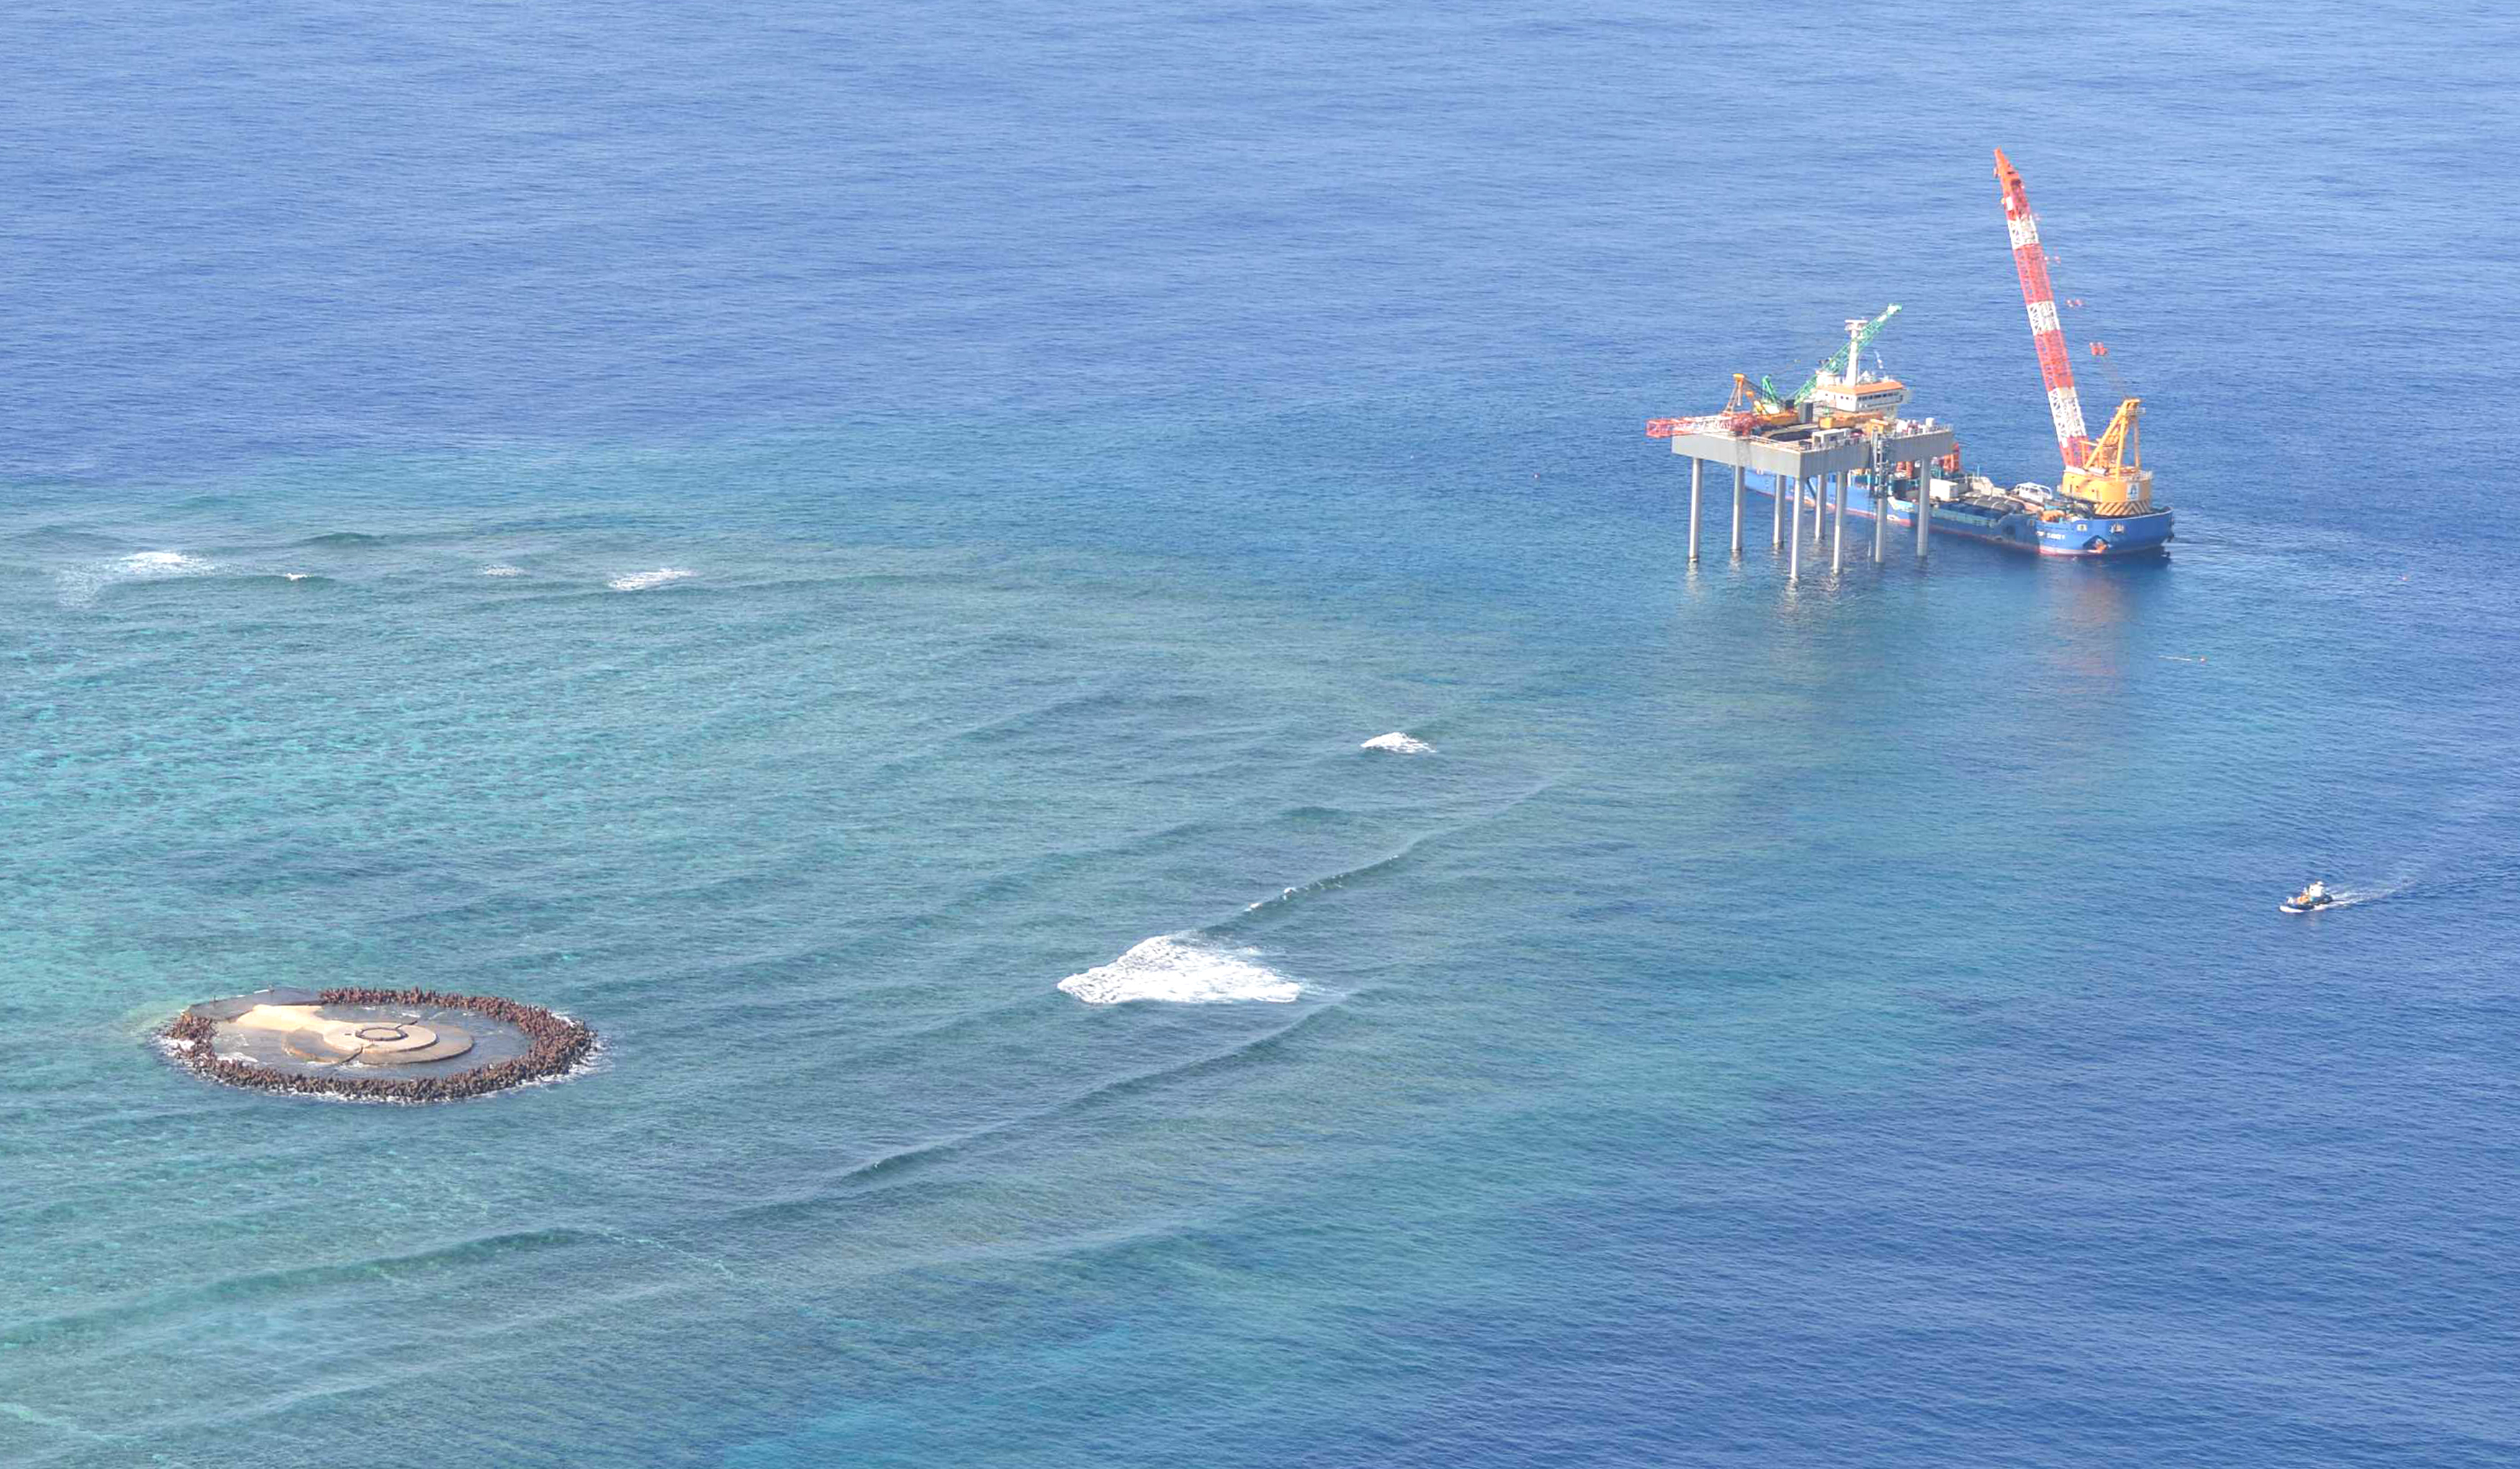 A photo from Yomiuri's jet airplane shows a boat towing a barge  near Okinotorishima island, Japan's southernmost island